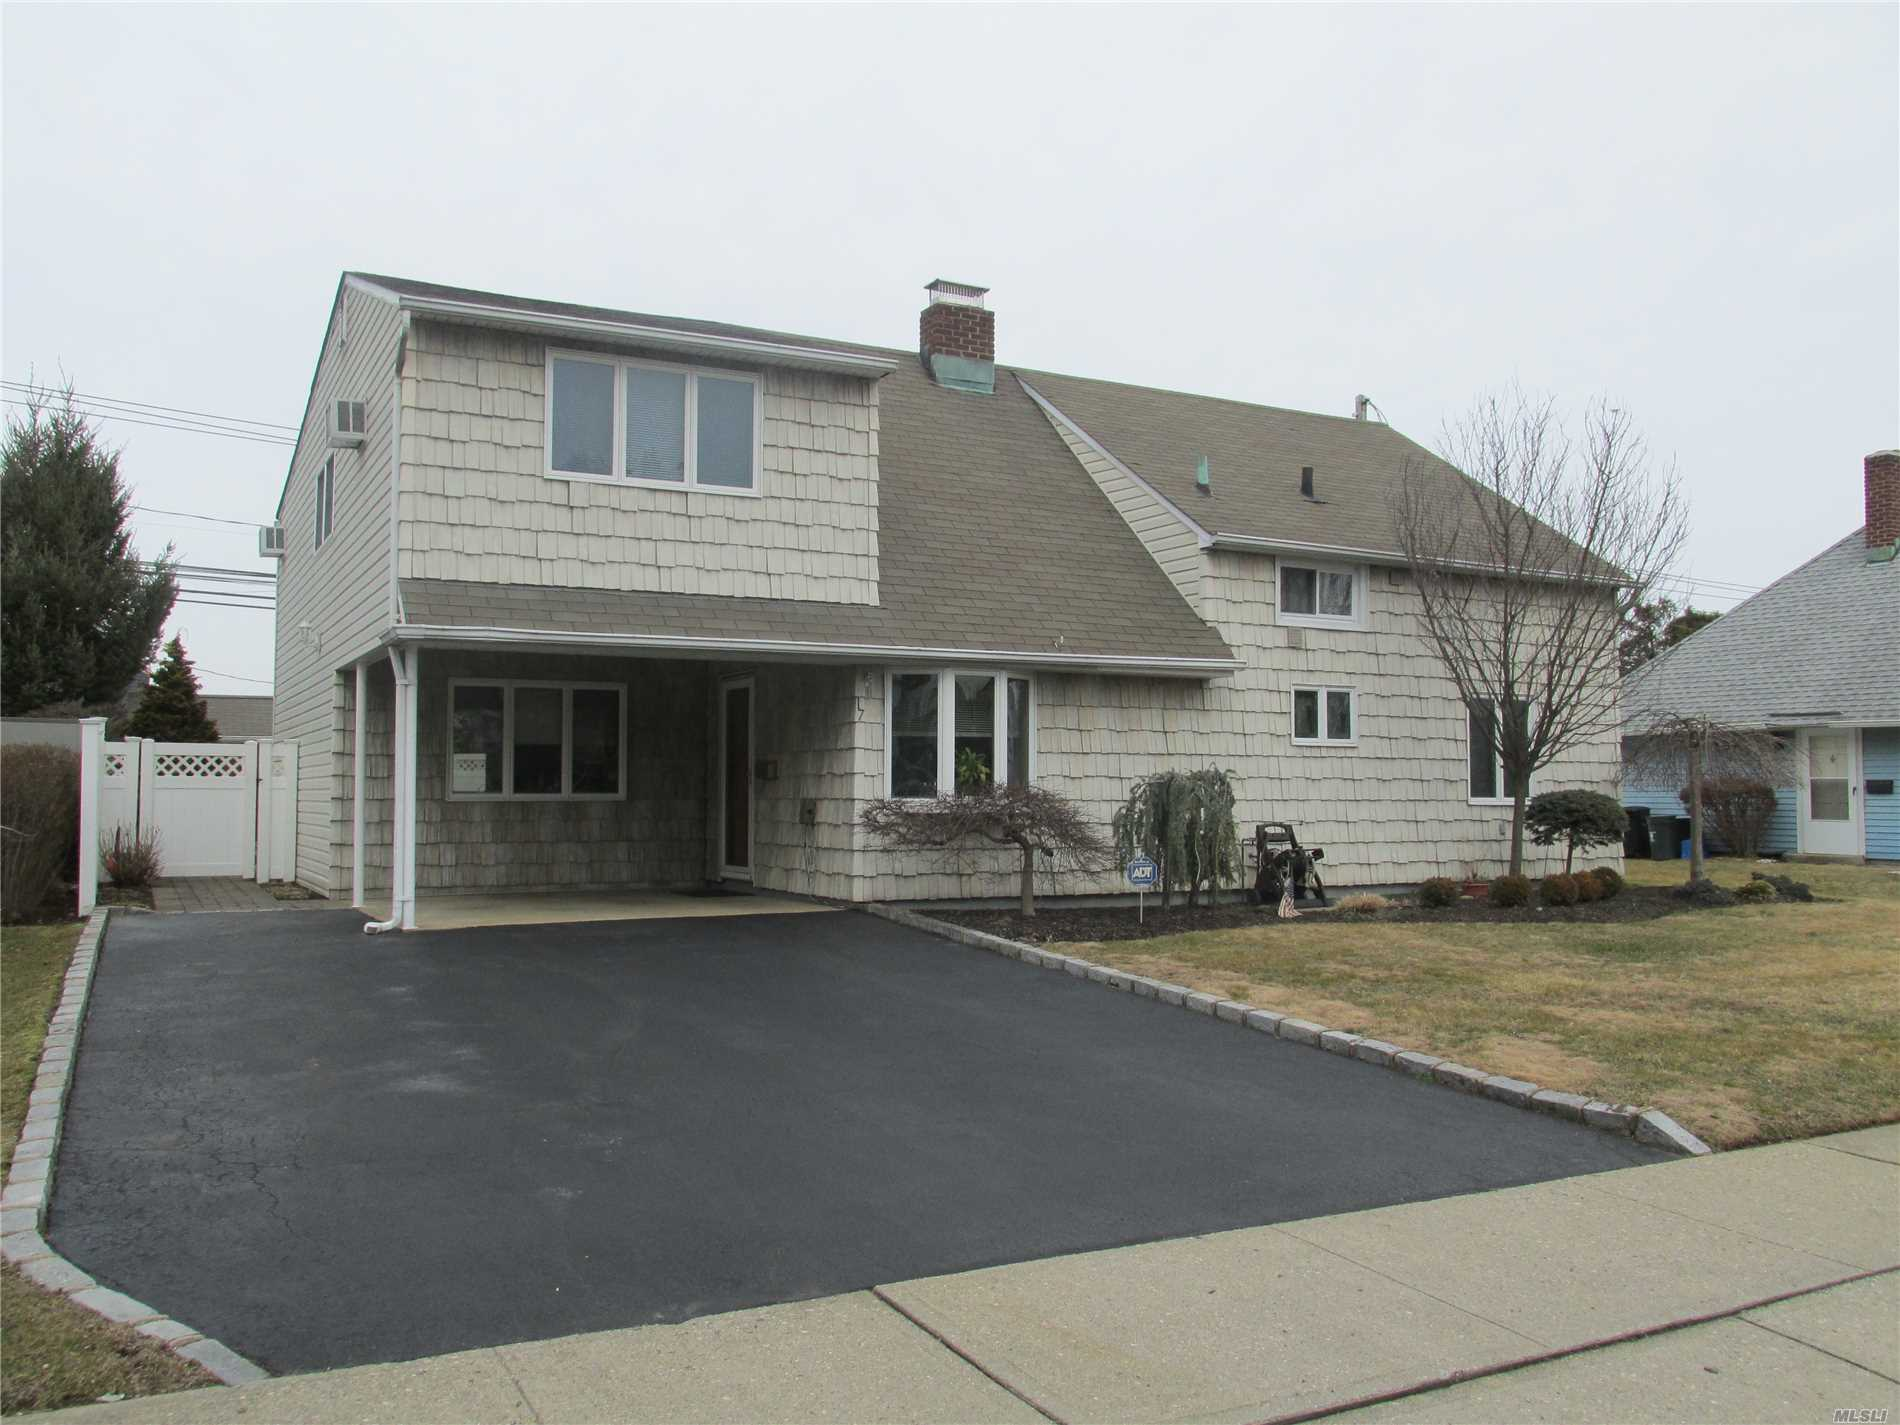 No Need To Play The Lottery..You've Hit The Jackpot With This House..Gorgeous 5 Br..2 Full Bath Expanded Ranch..Granite Eik..Formal DR with Fireplace..Updated Full Baths..Large Master Br..Anderson Windows..150 Amp Elec..Engineered Hardwood Floors..Igs..Large Yard and Patio..Bonus Room..Possible Mother/Daughter With Proper Permits..Tax Grievance Filed For 20/21..This Is A Must See!